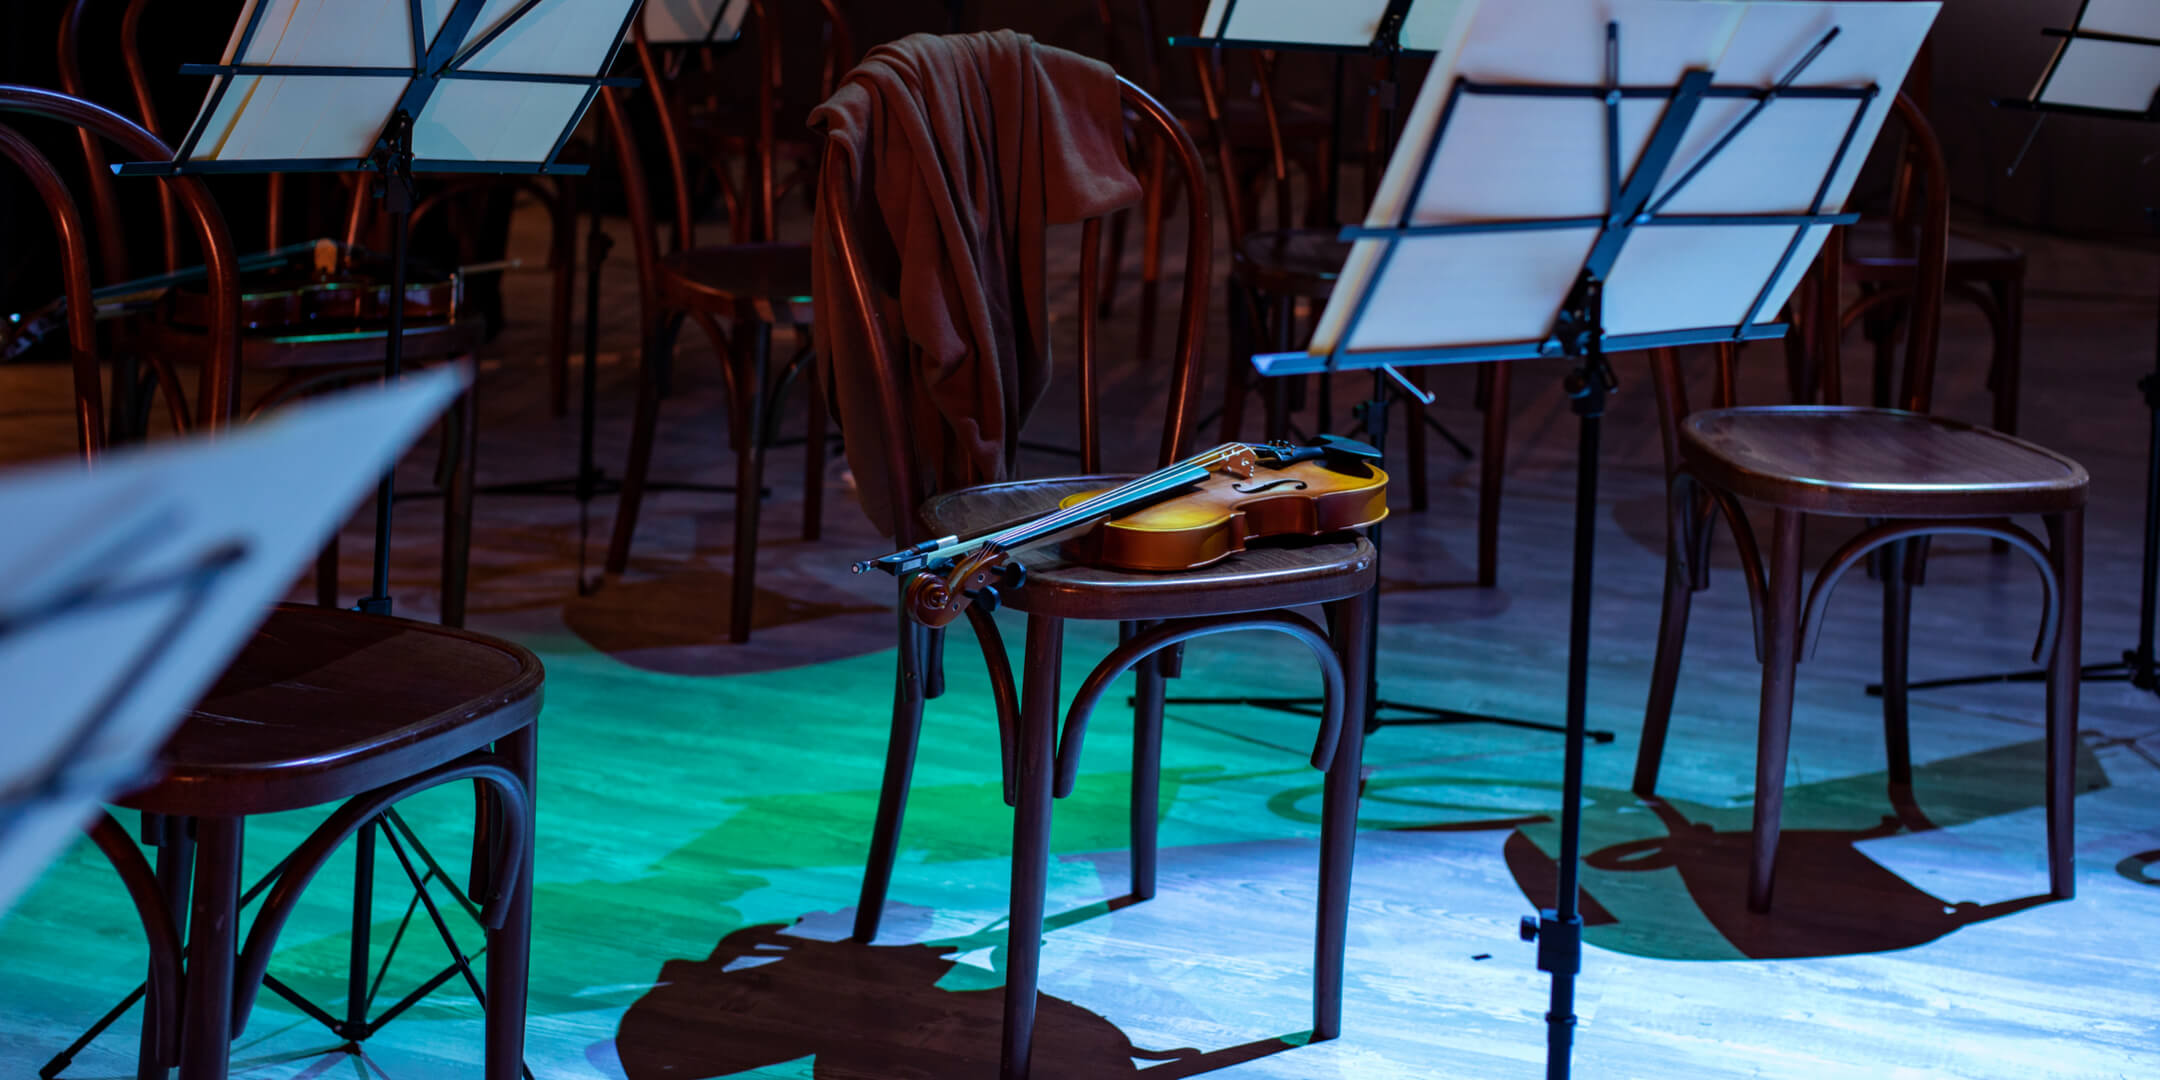 Health and Safety for Orchestral Players during Covid-19